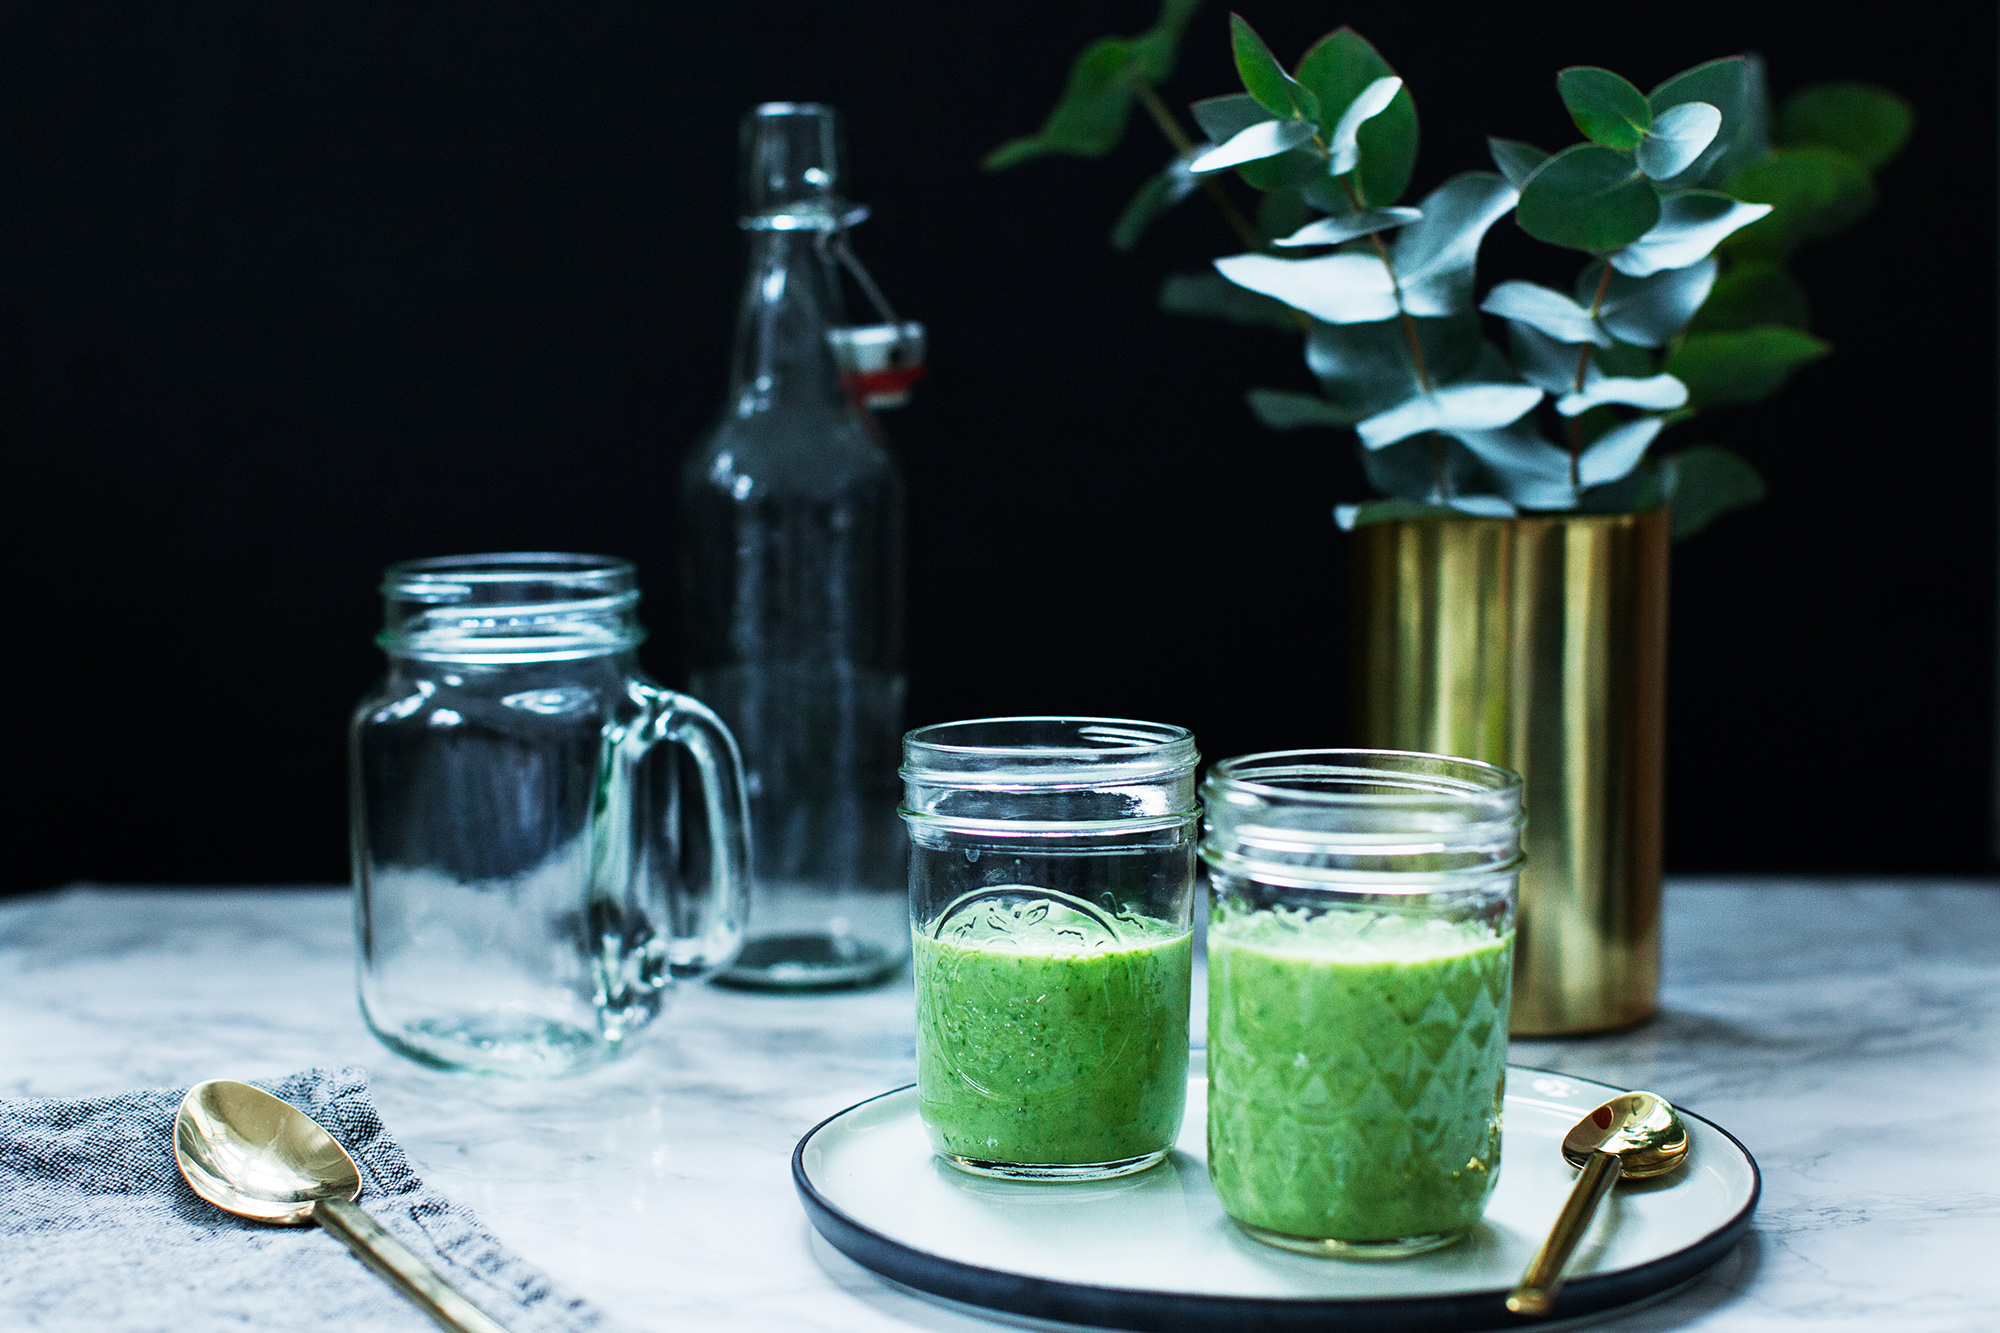 Recipe: Green Kale Smoothie